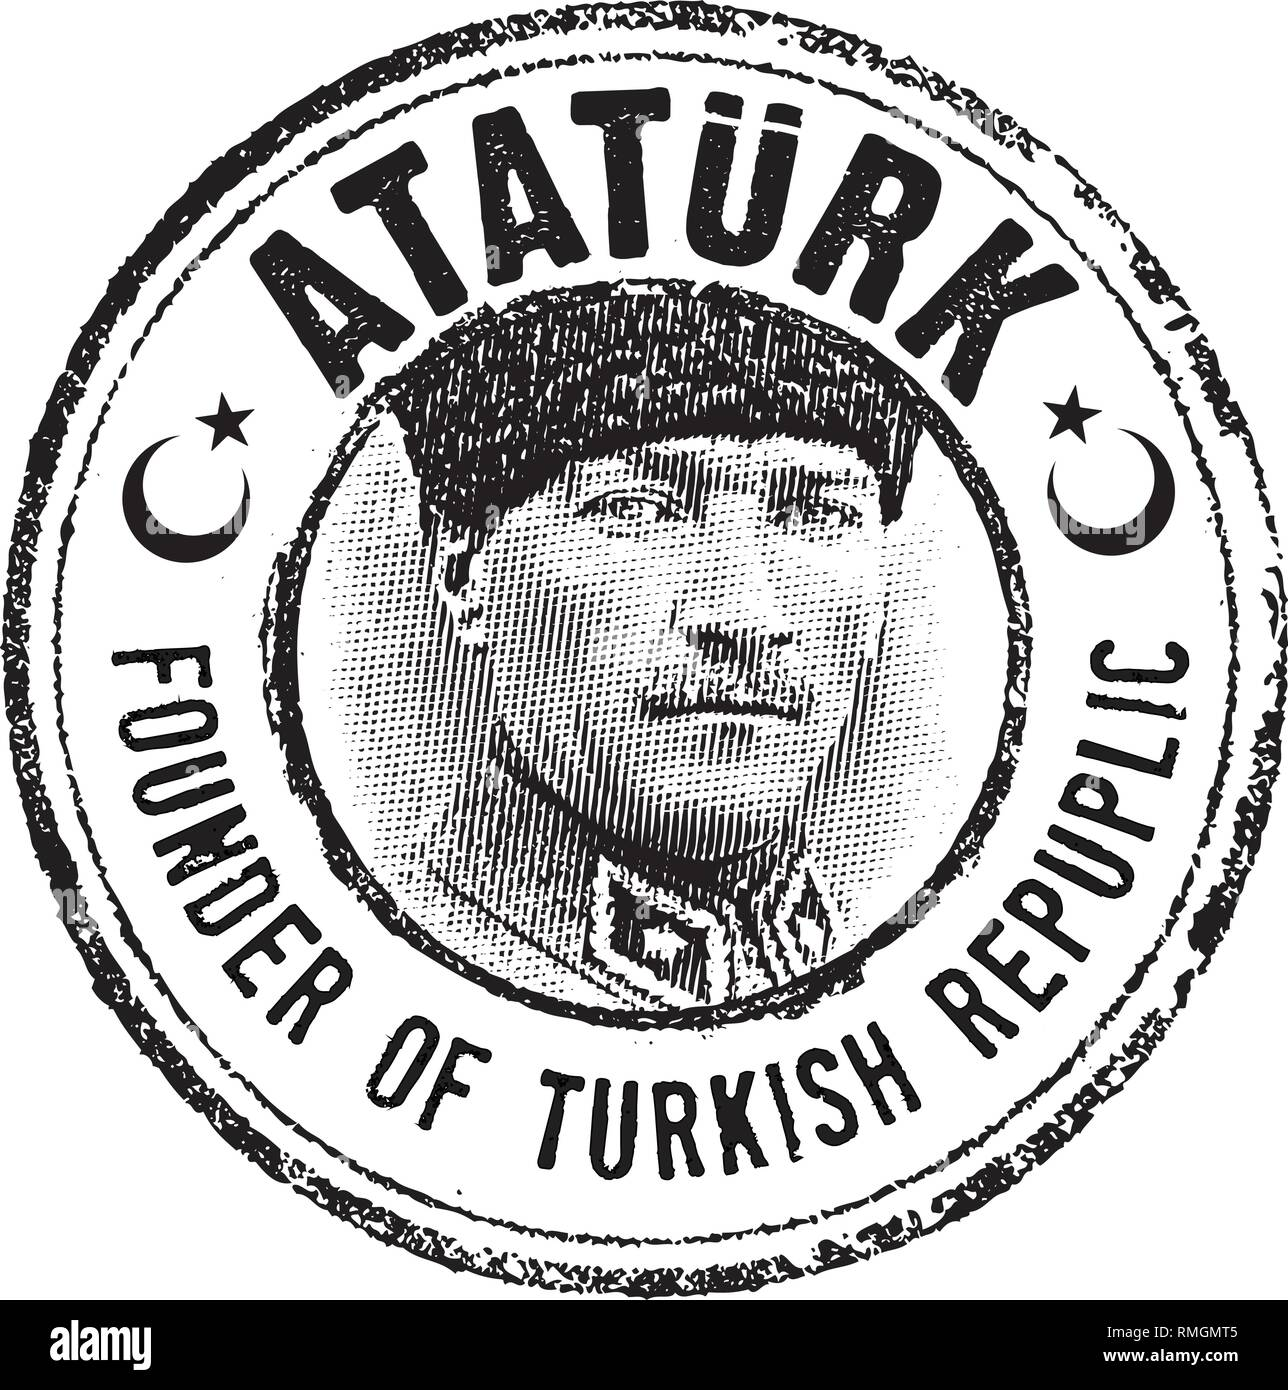 Mustafa Kemal Ataturk portrait stamp in line art illustration, He was the Founder of Turkish Republic and leader. Stock Vector